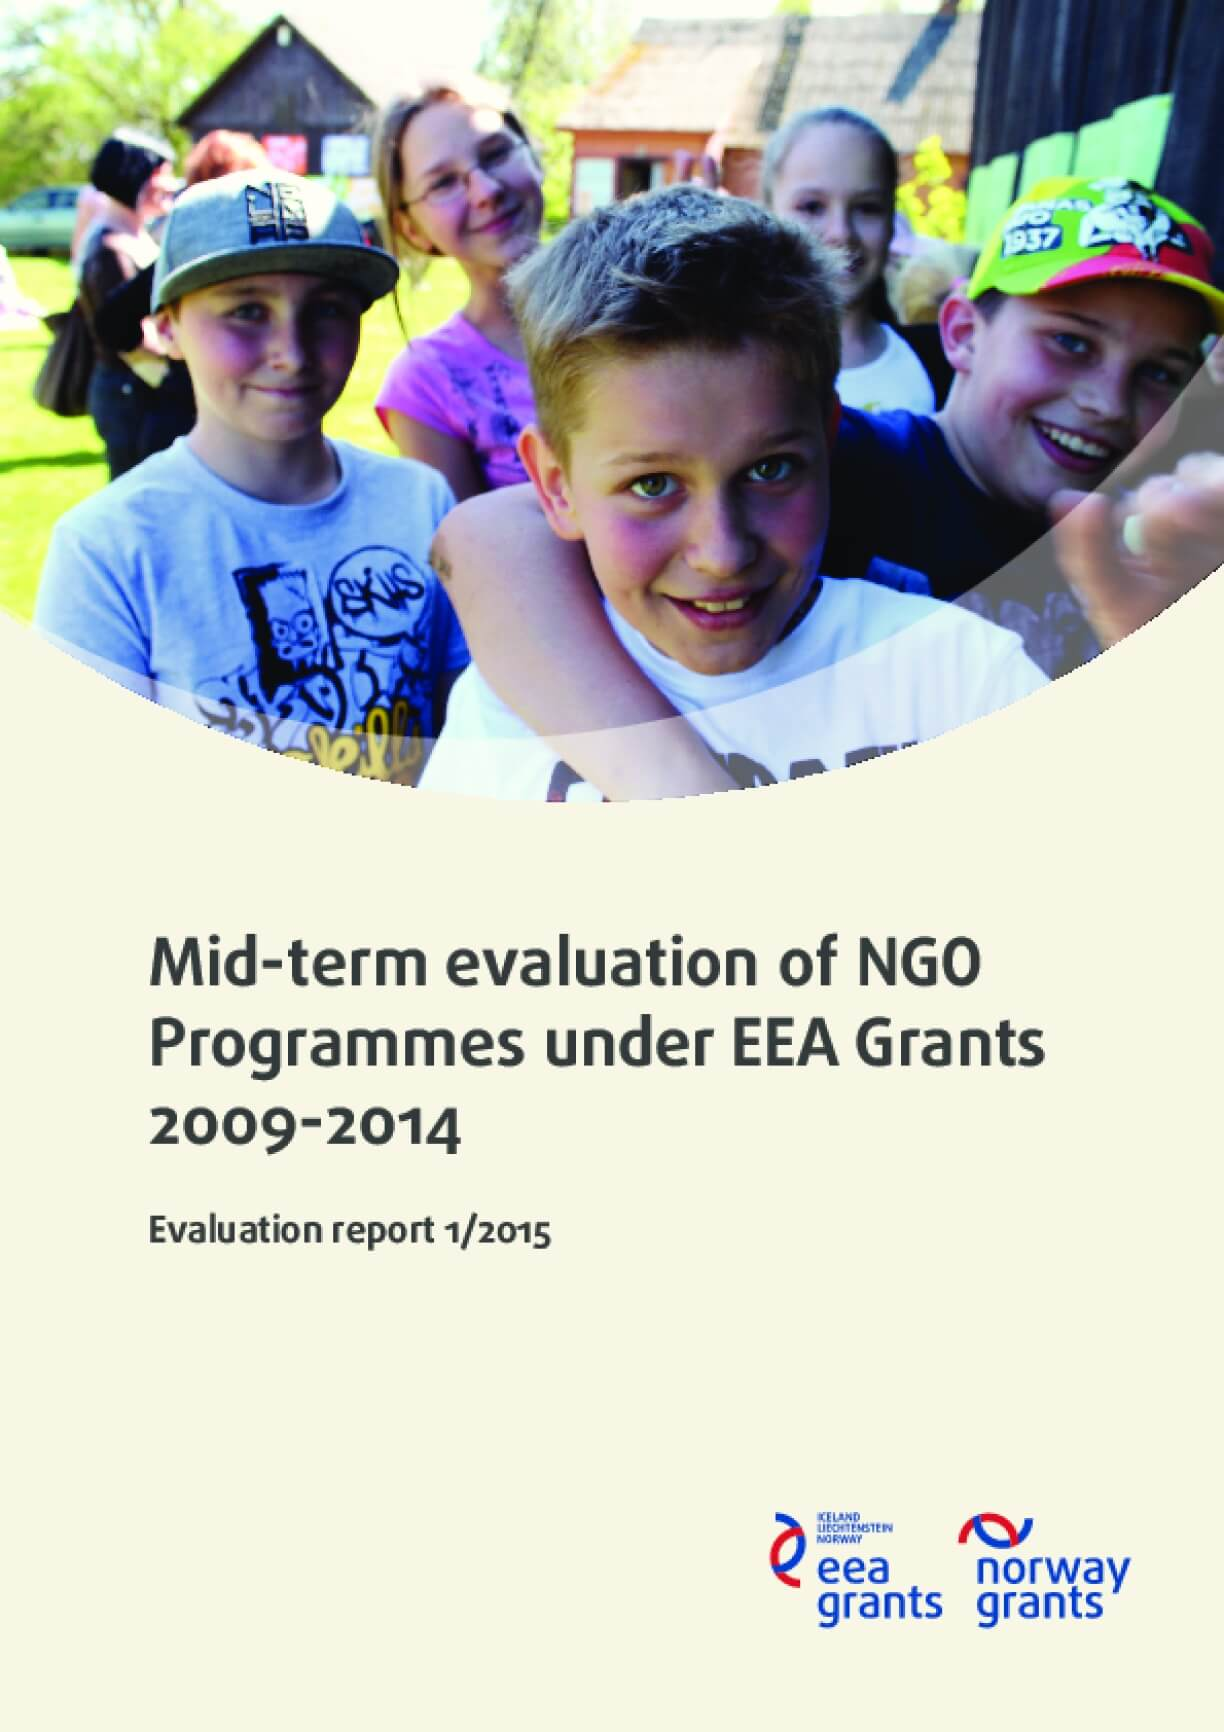 Mid-term Evaluation of NGO Programmes Under EEA Grants 2009-2014